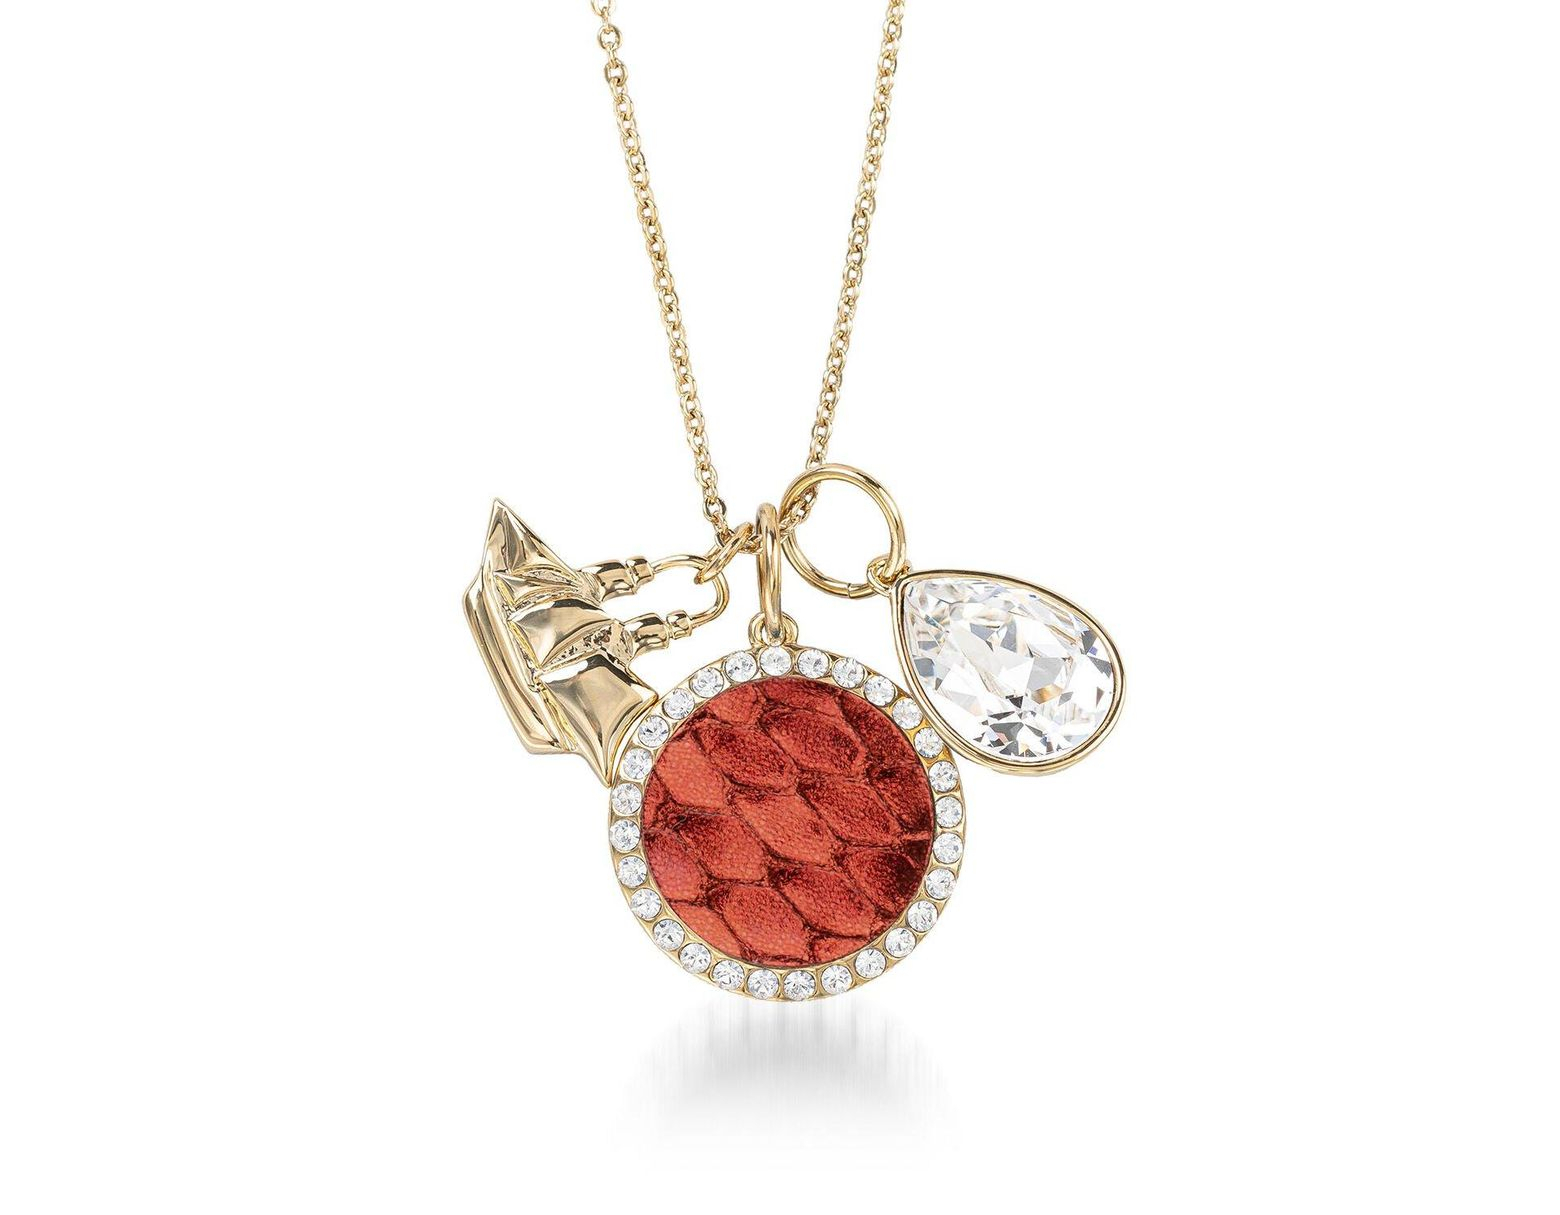 Women's Metallic Crystal Charm Necklace Garnet Fairhaven With Regard To Best And Newest Garnet Red January Birthstone Locket Element Necklaces (View 18 of 25)